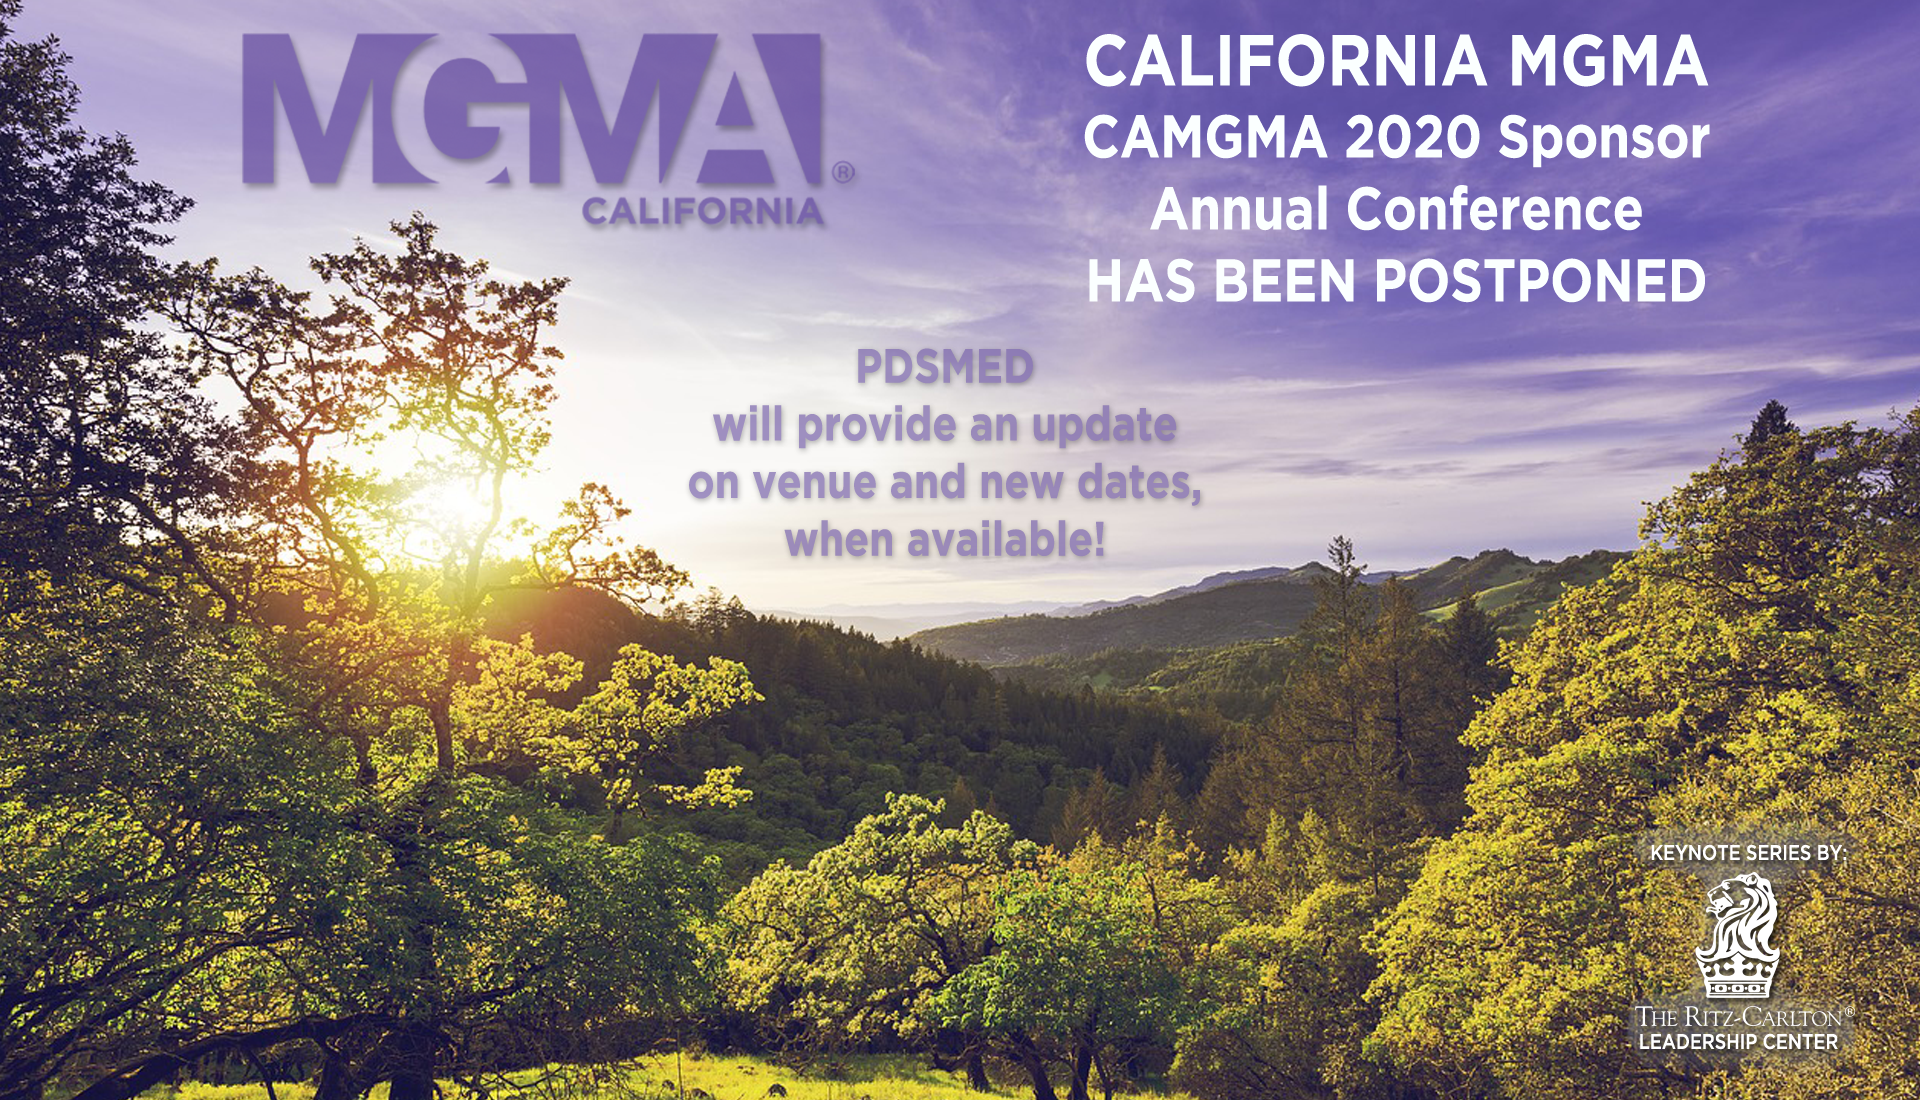 CAMGMA 2020 Sponsor - Annual Conference (postponed) PDSMED will provide an update on venue and new dates, when available!